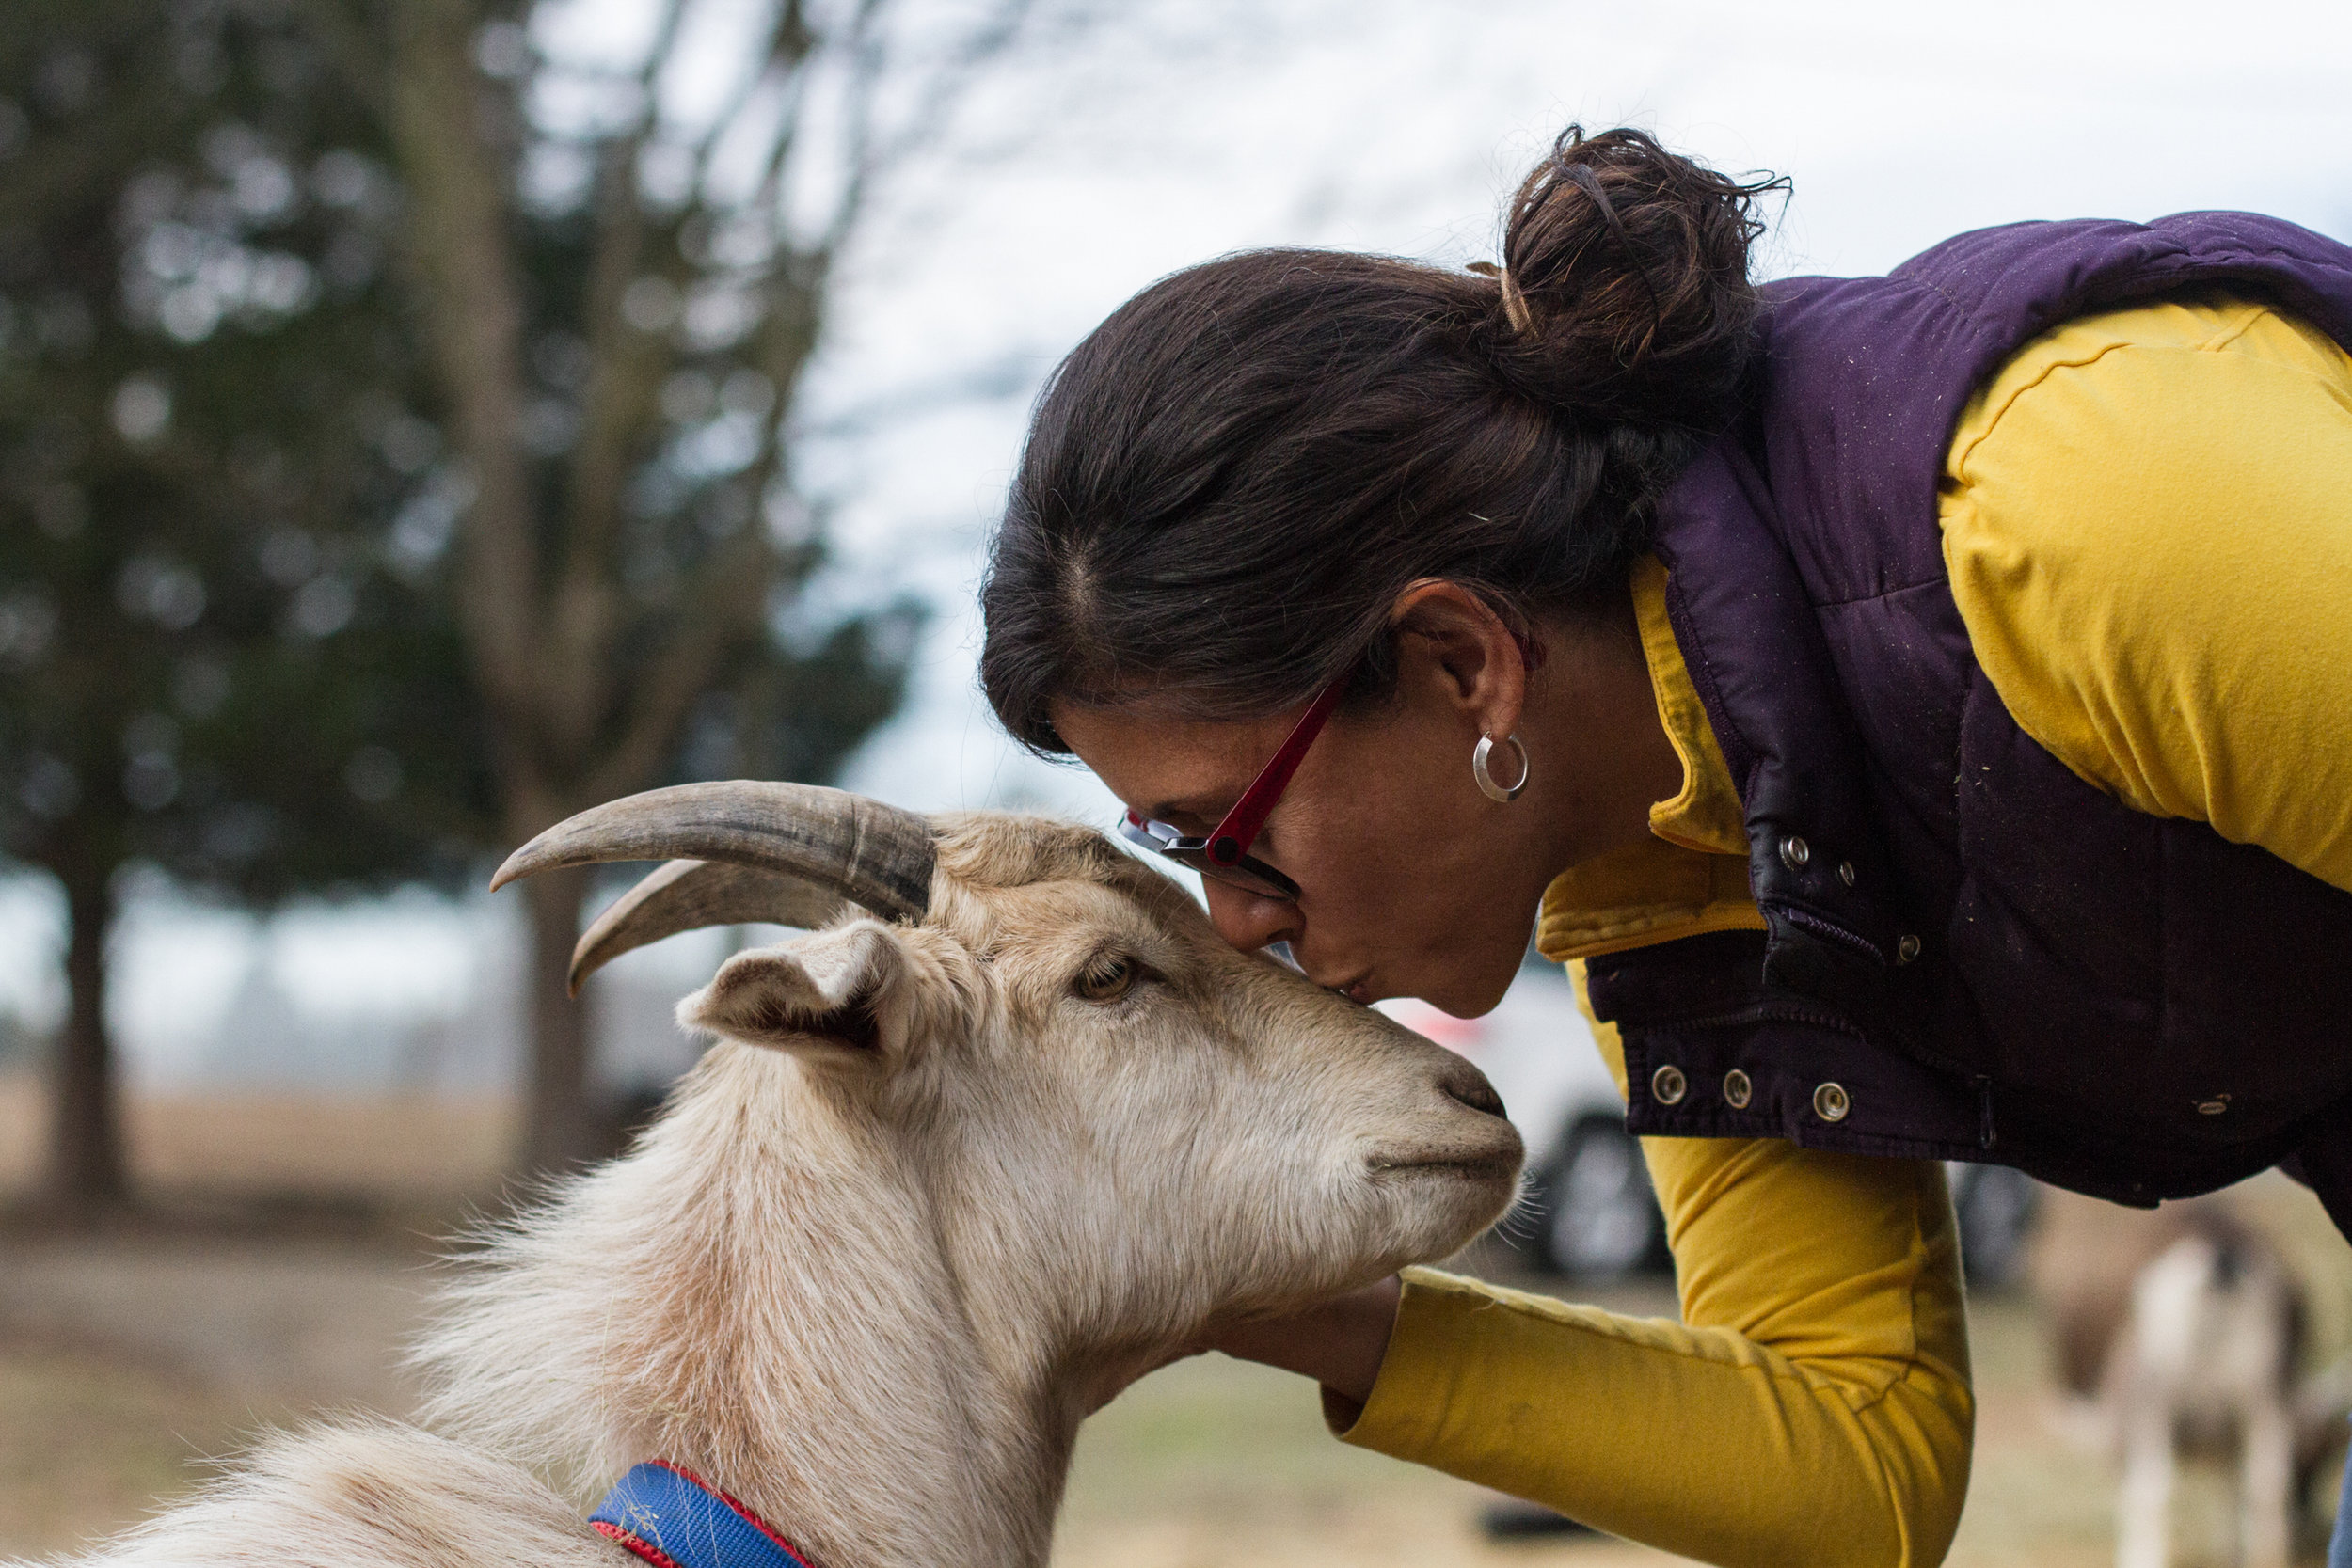 Sandra Domville shares a tender moment with one of the goats on her farm. Febuary 8, 2017.